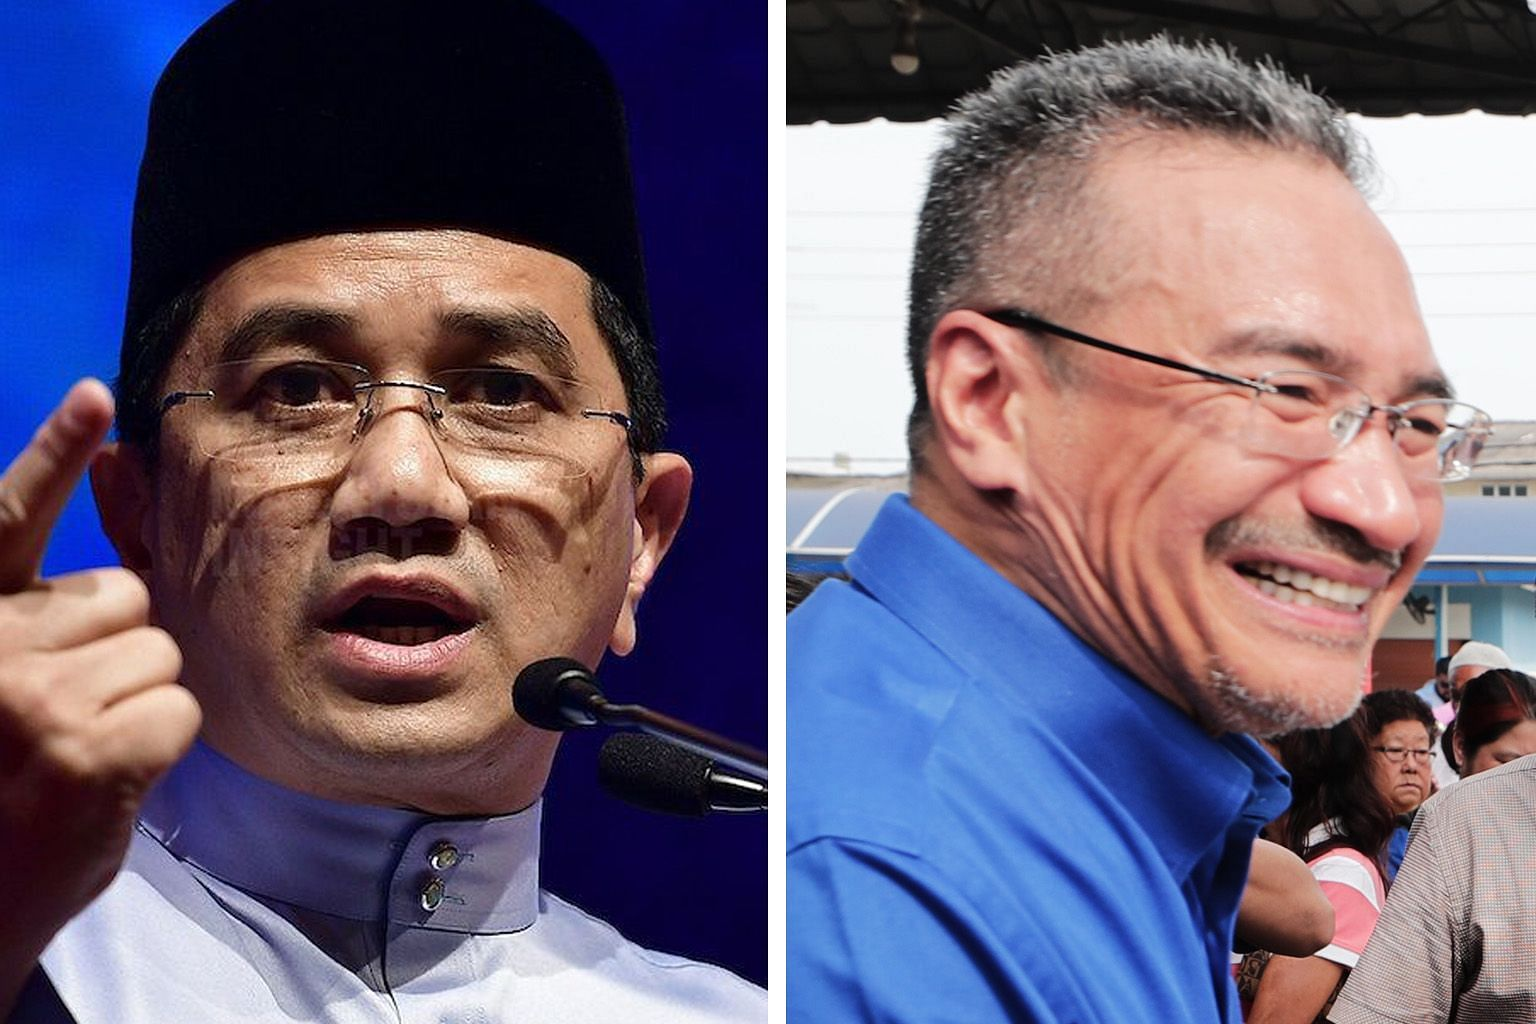 Former Umno vice-president Hishammuddin Hussein (left) and PKR deputy president Azmin Ali (right) said the dinner meeting on Monday was an innocent gathering of friends.